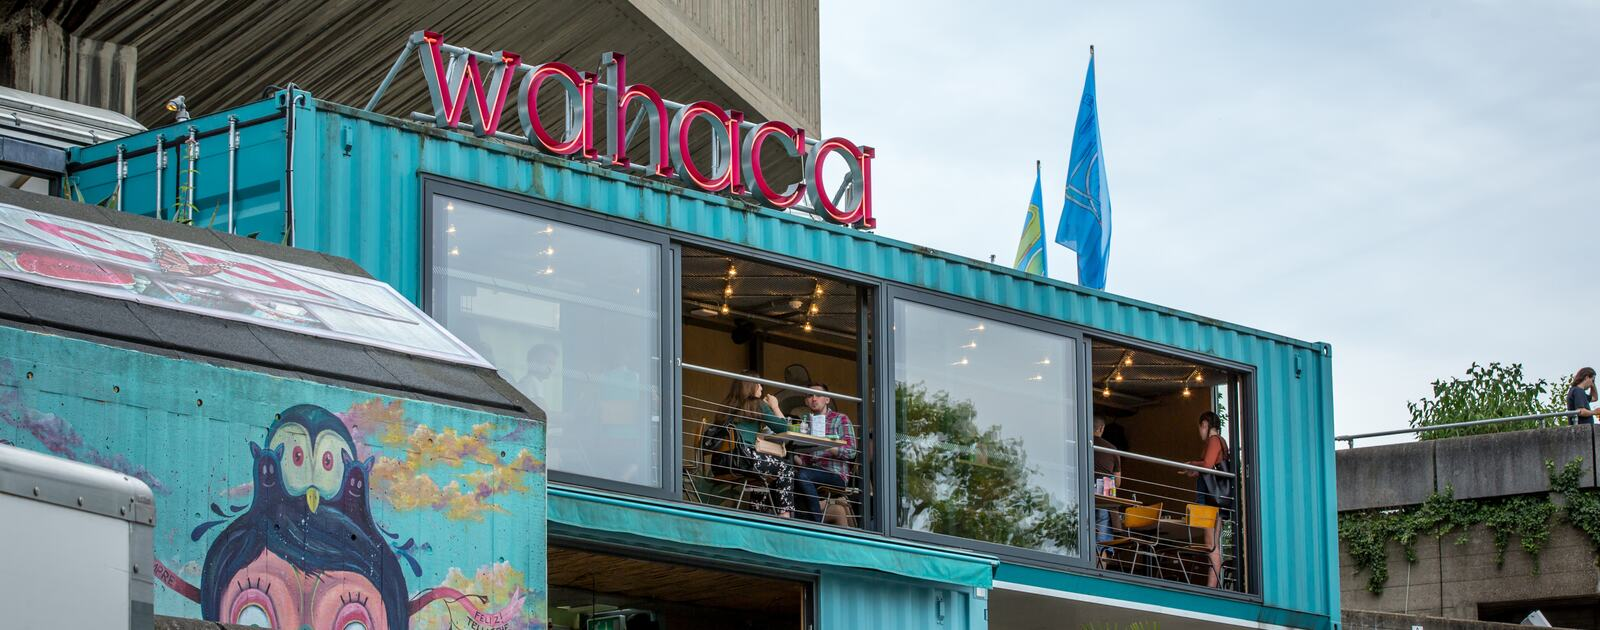 Wahaca shipping containers at Southbank Centre